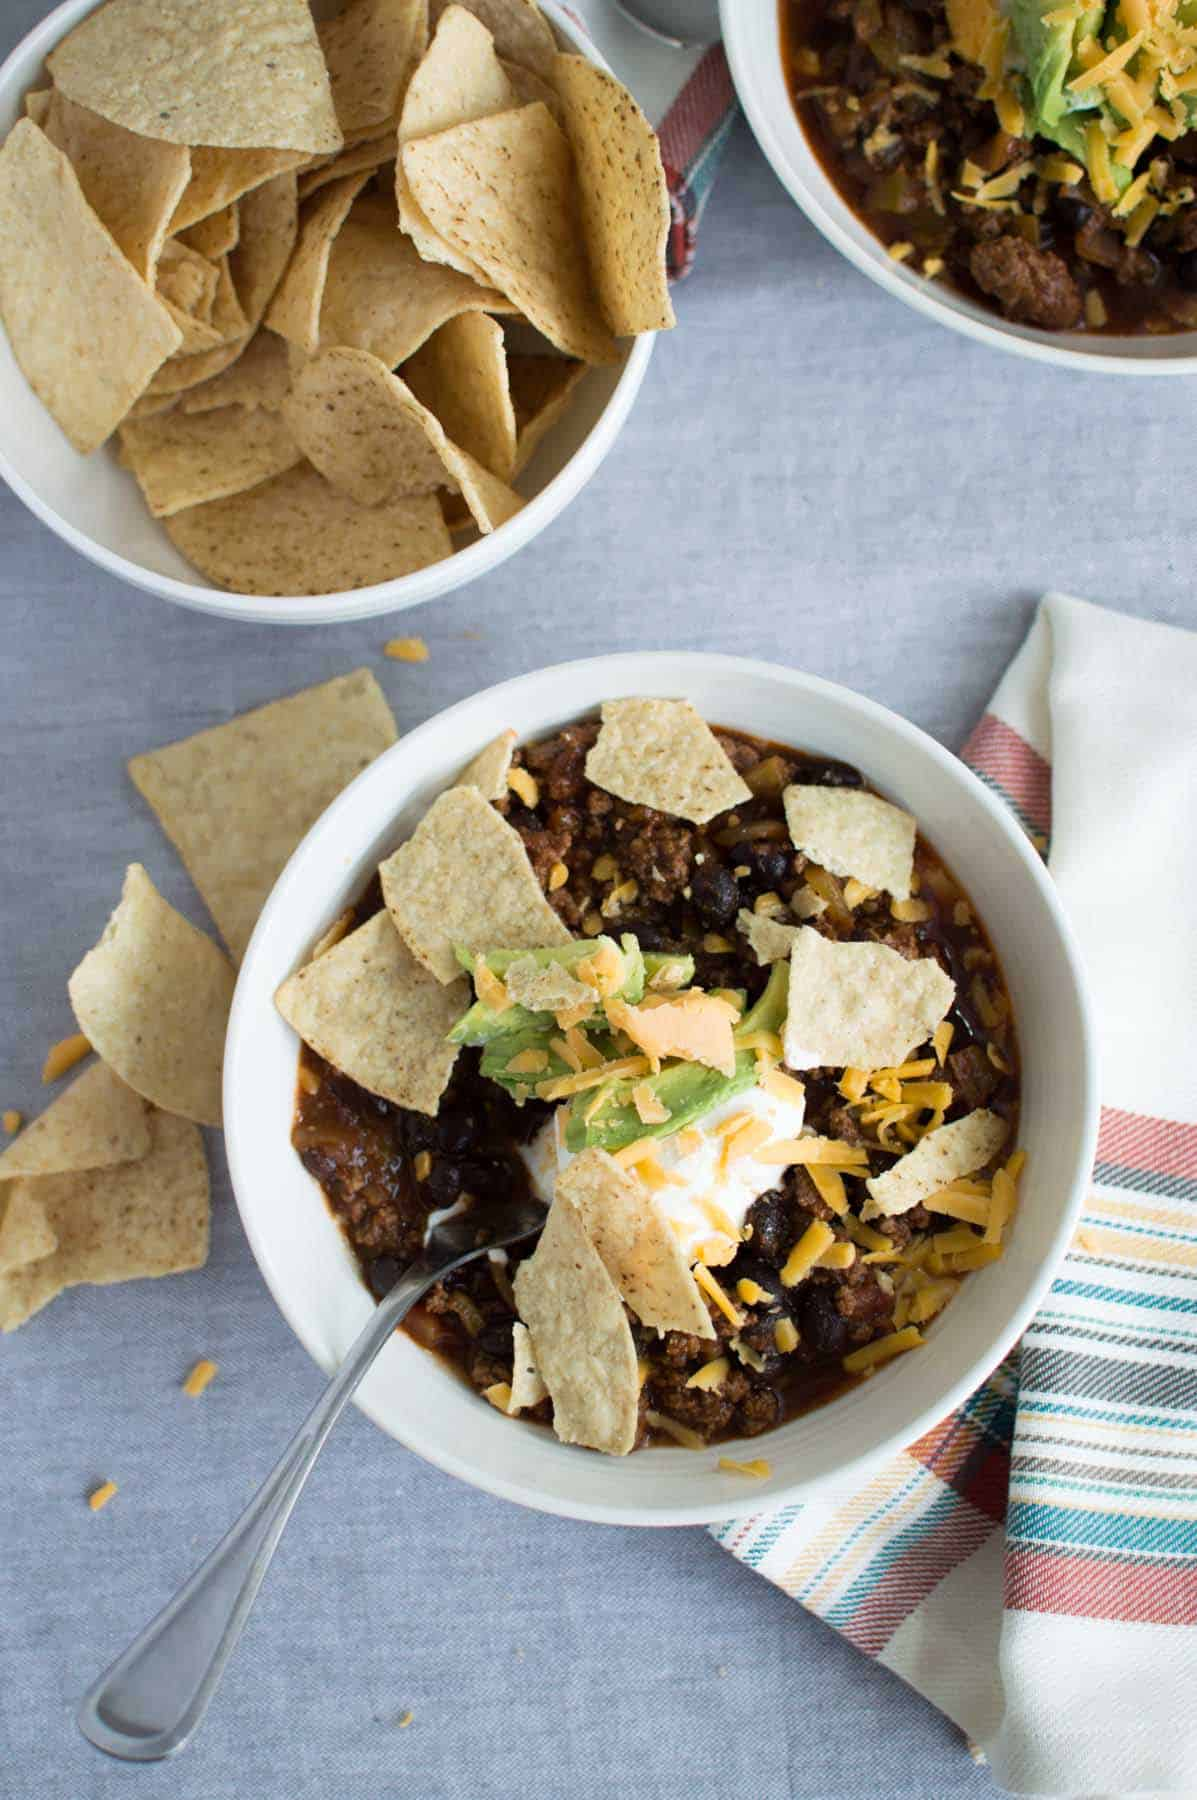 Bowl of Quick and Easy Black Bean Chili with all the fixings